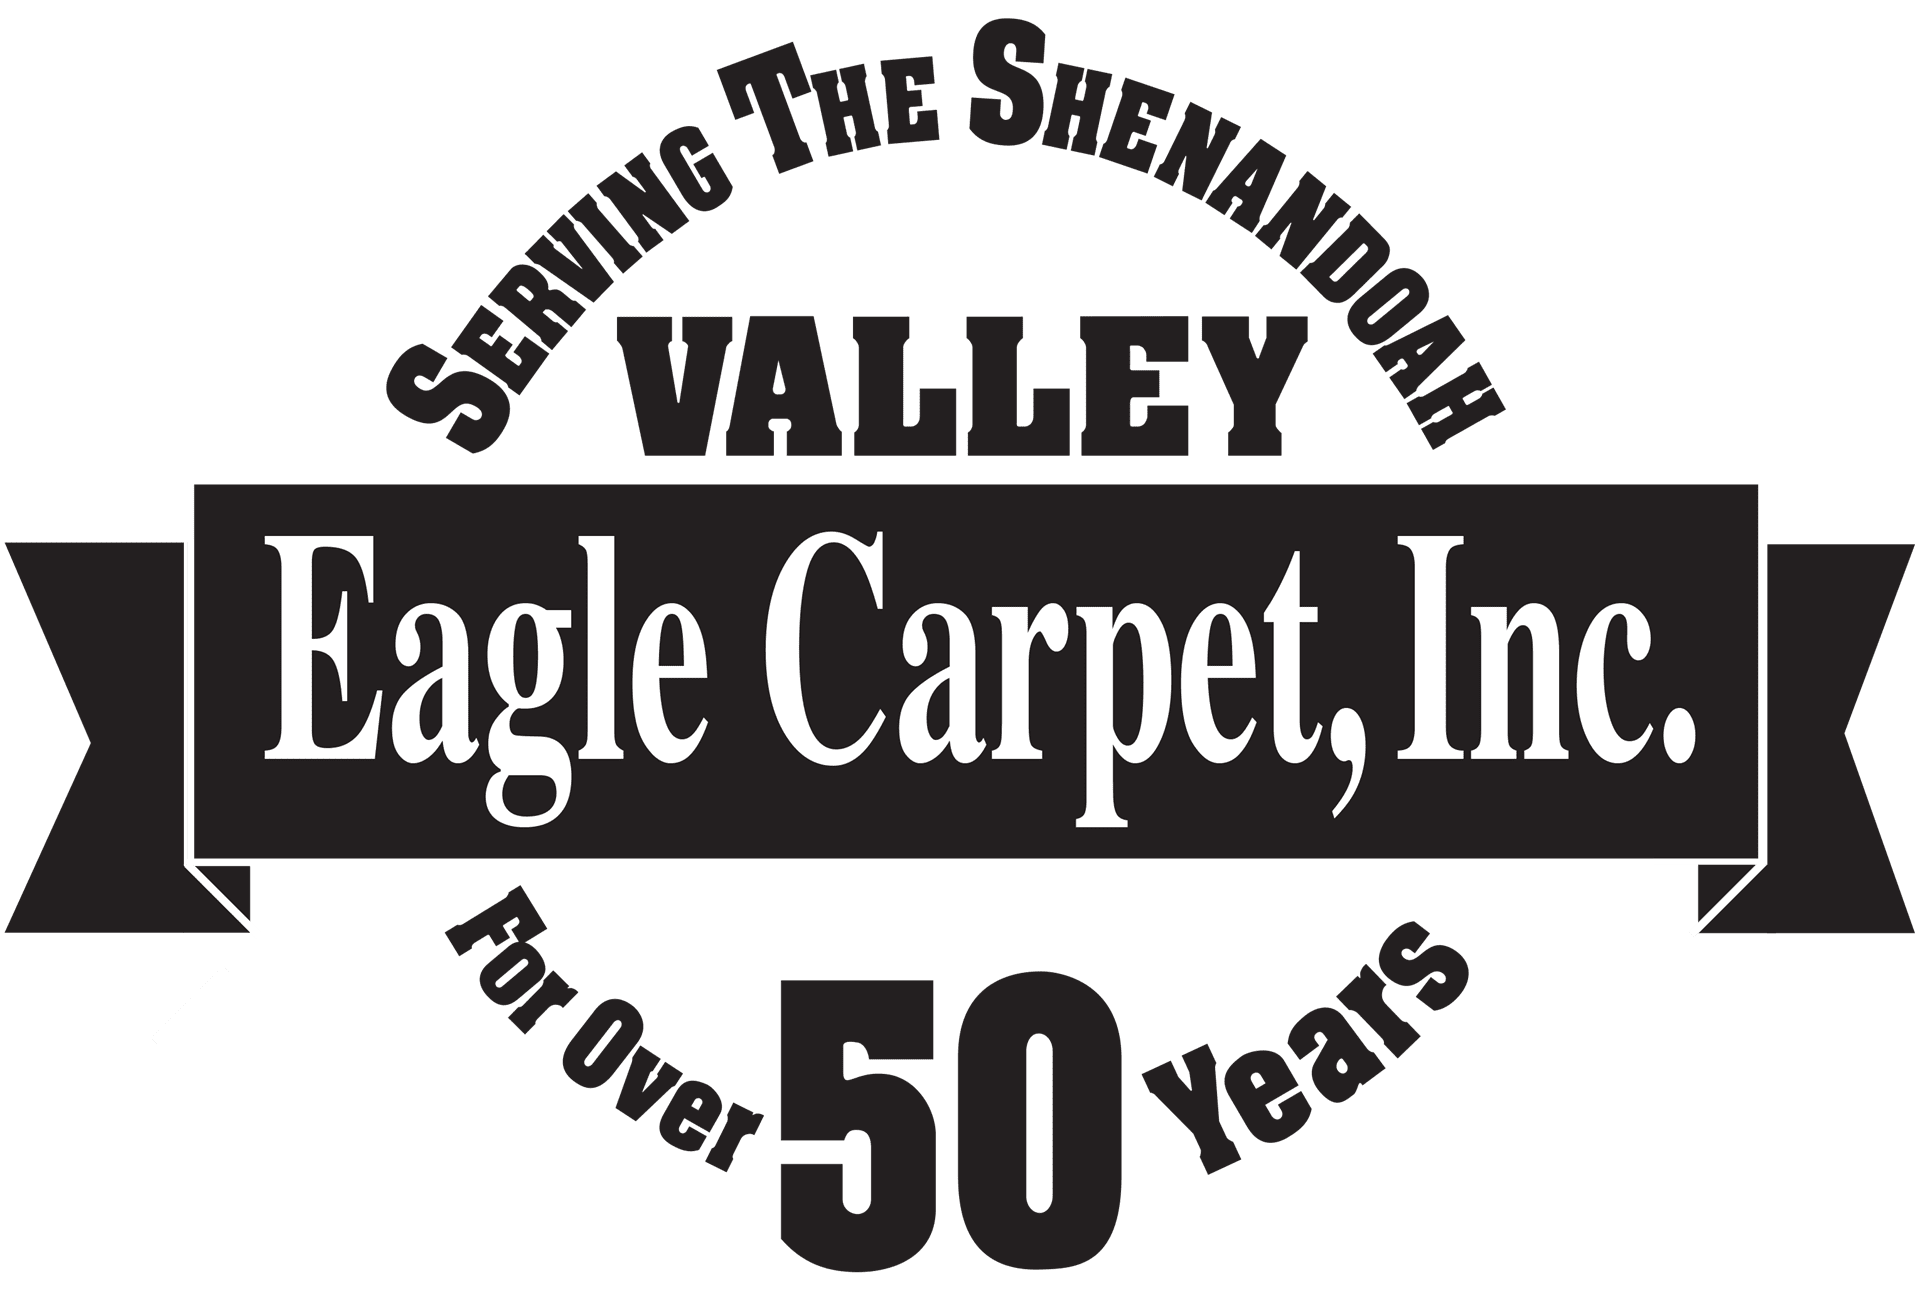 Eagle Carpet, Inc.